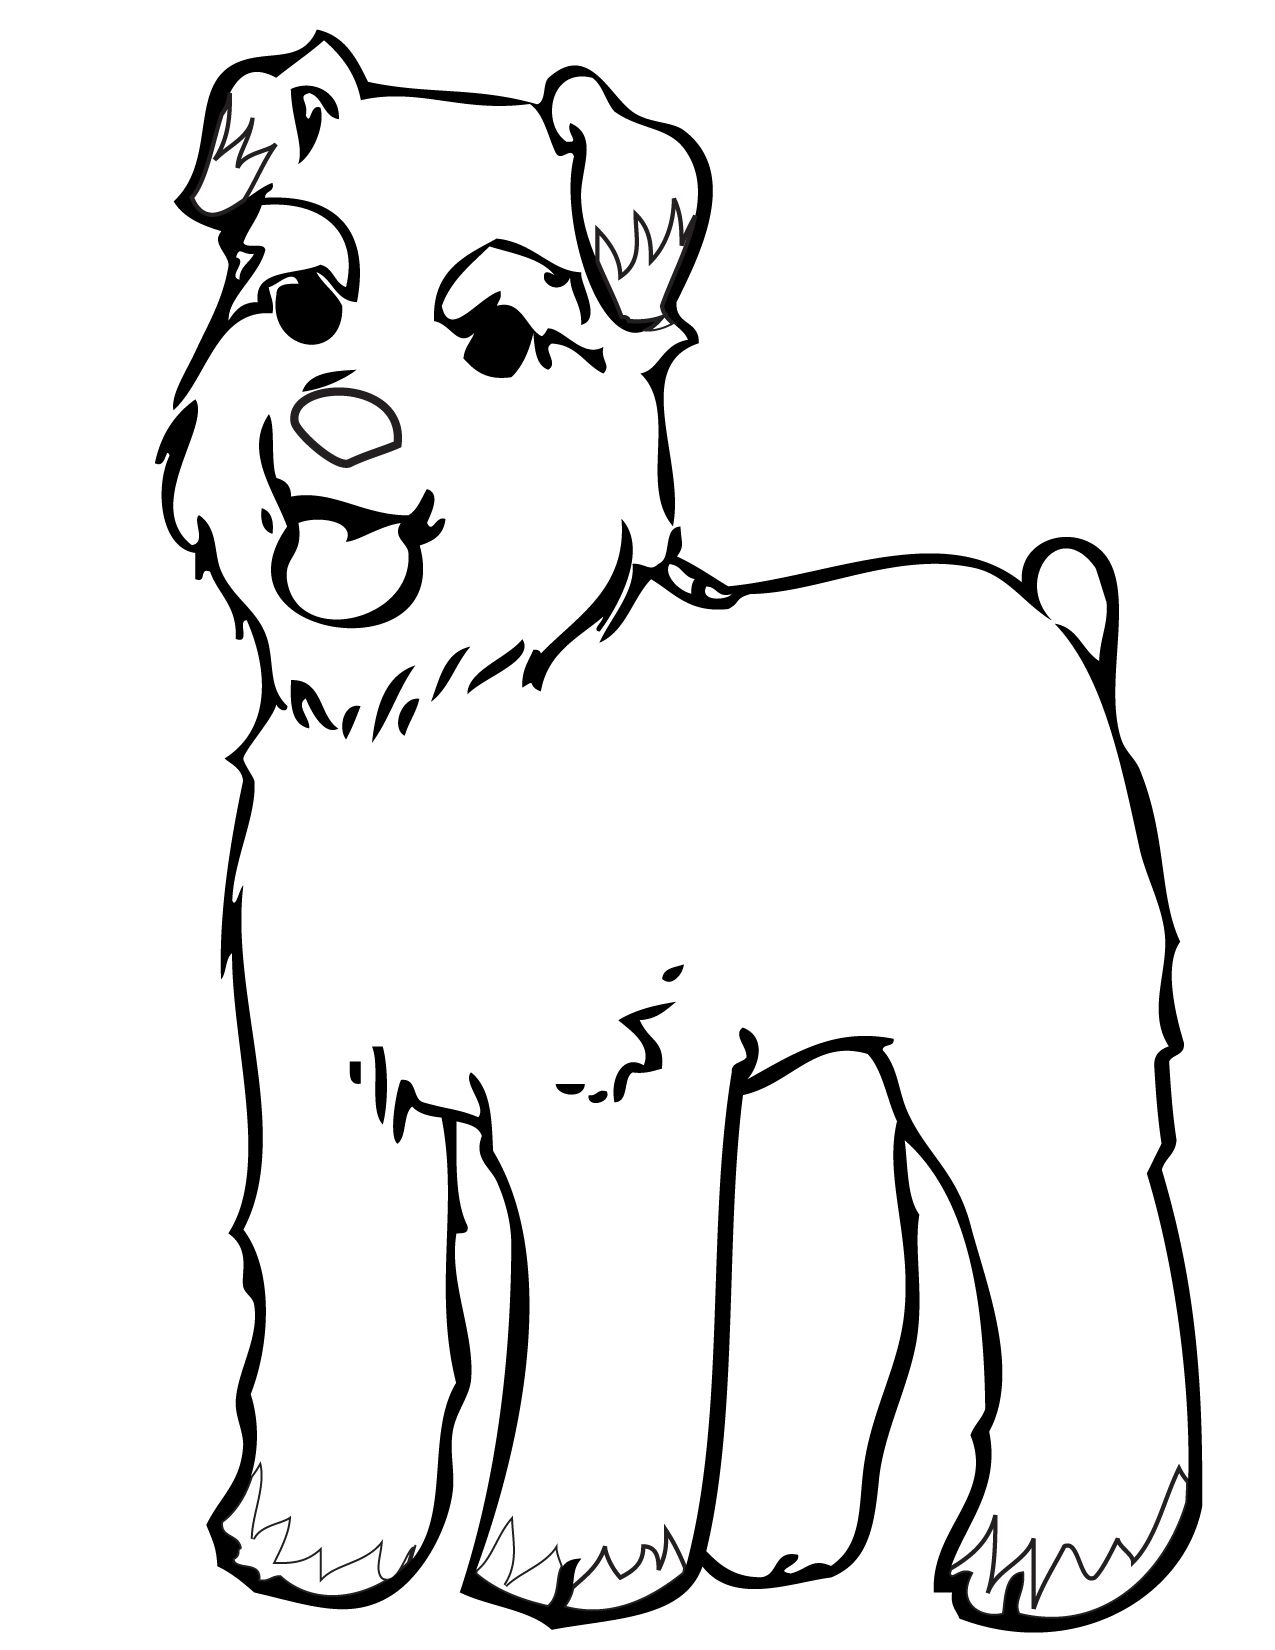 Dog Color Pages Printable | Print This Page | Dogs Coloring Pages | Coloring  Pages